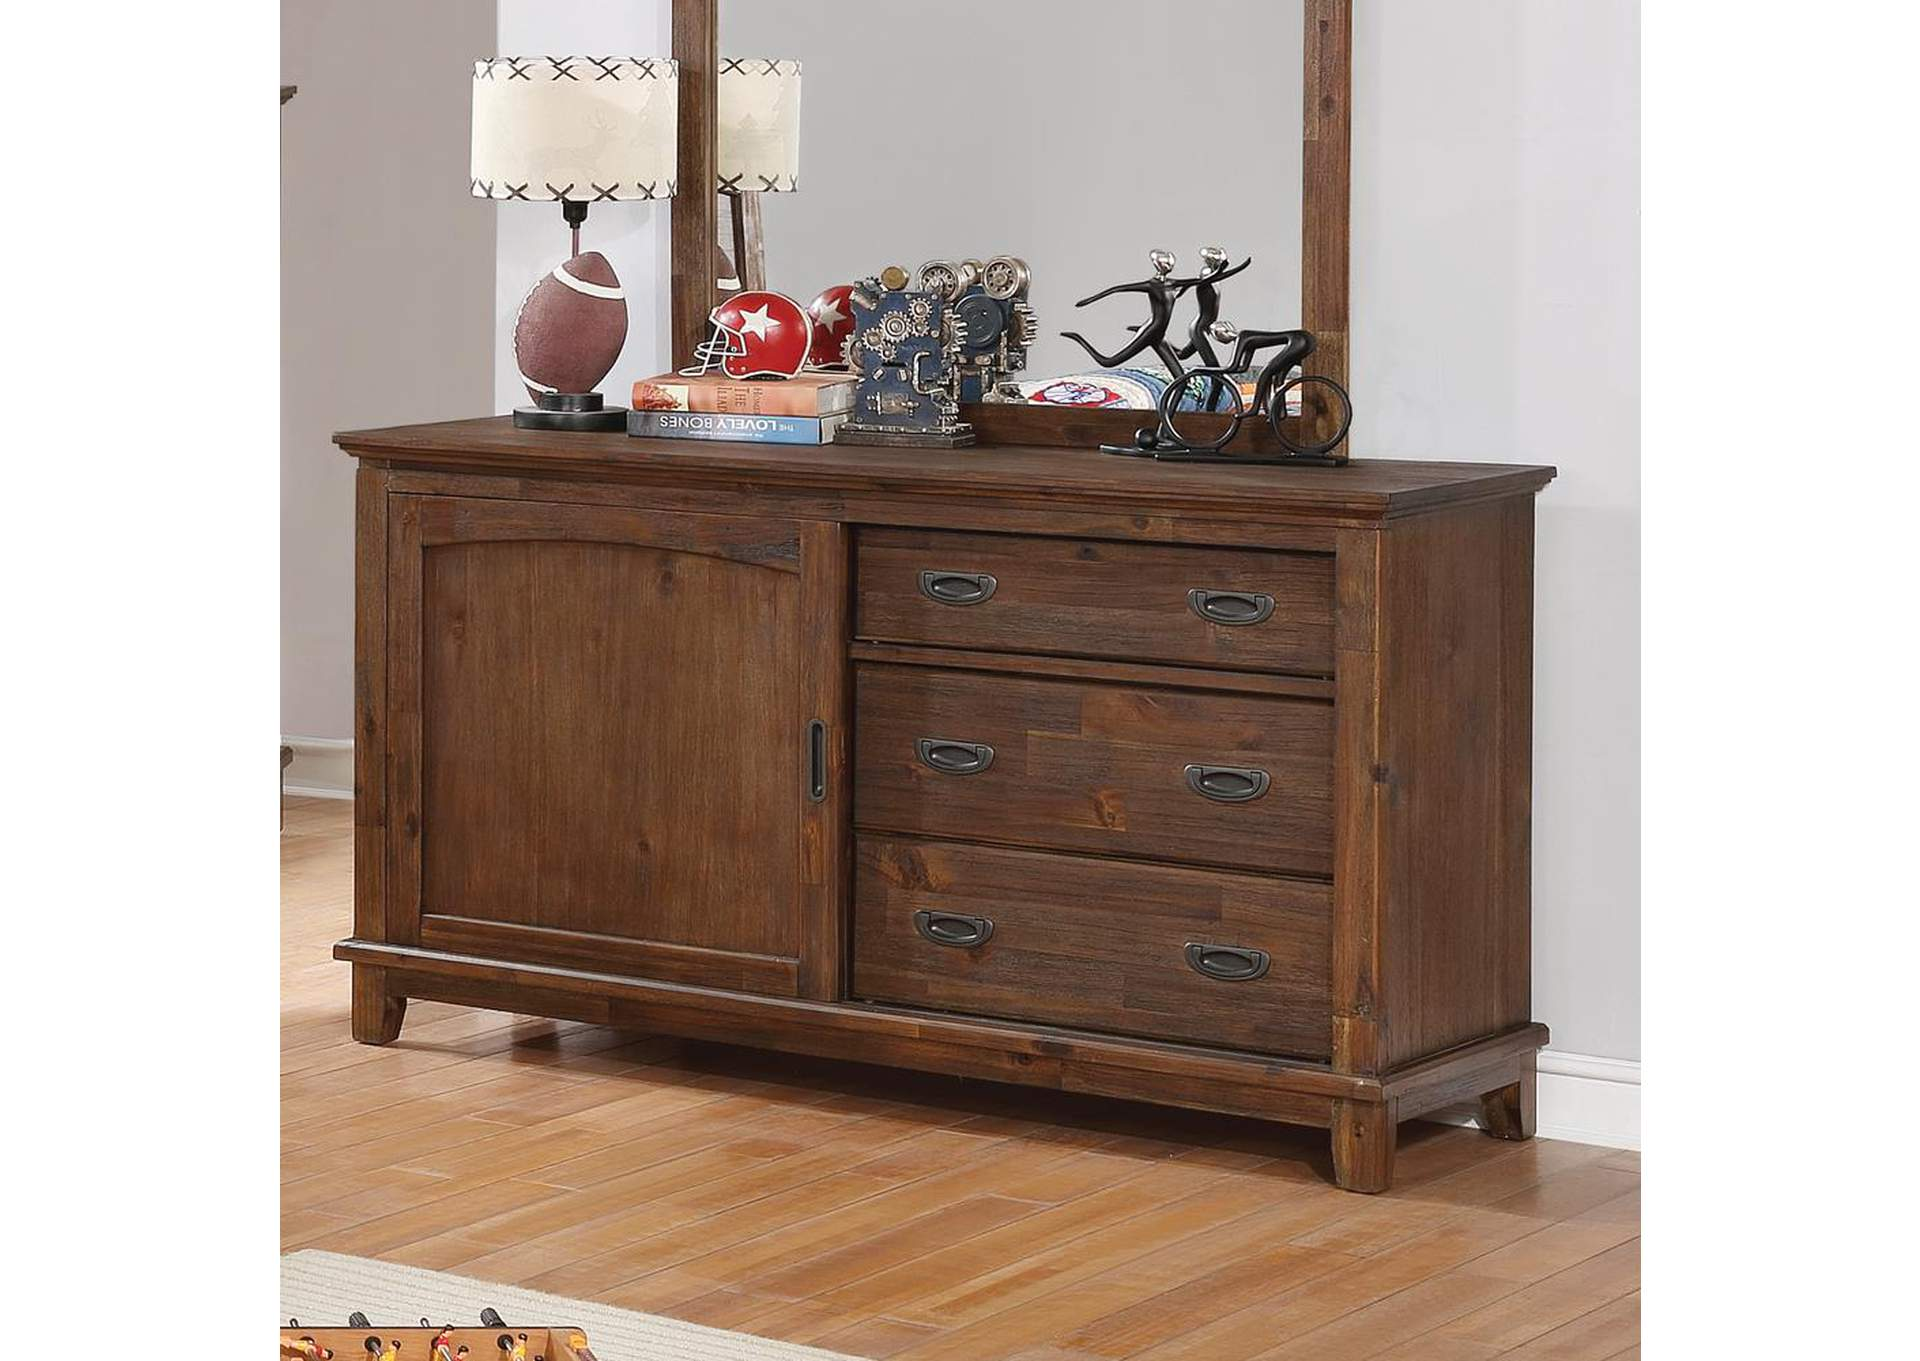 Kinsley Brown Dresser,Coaster Furniture